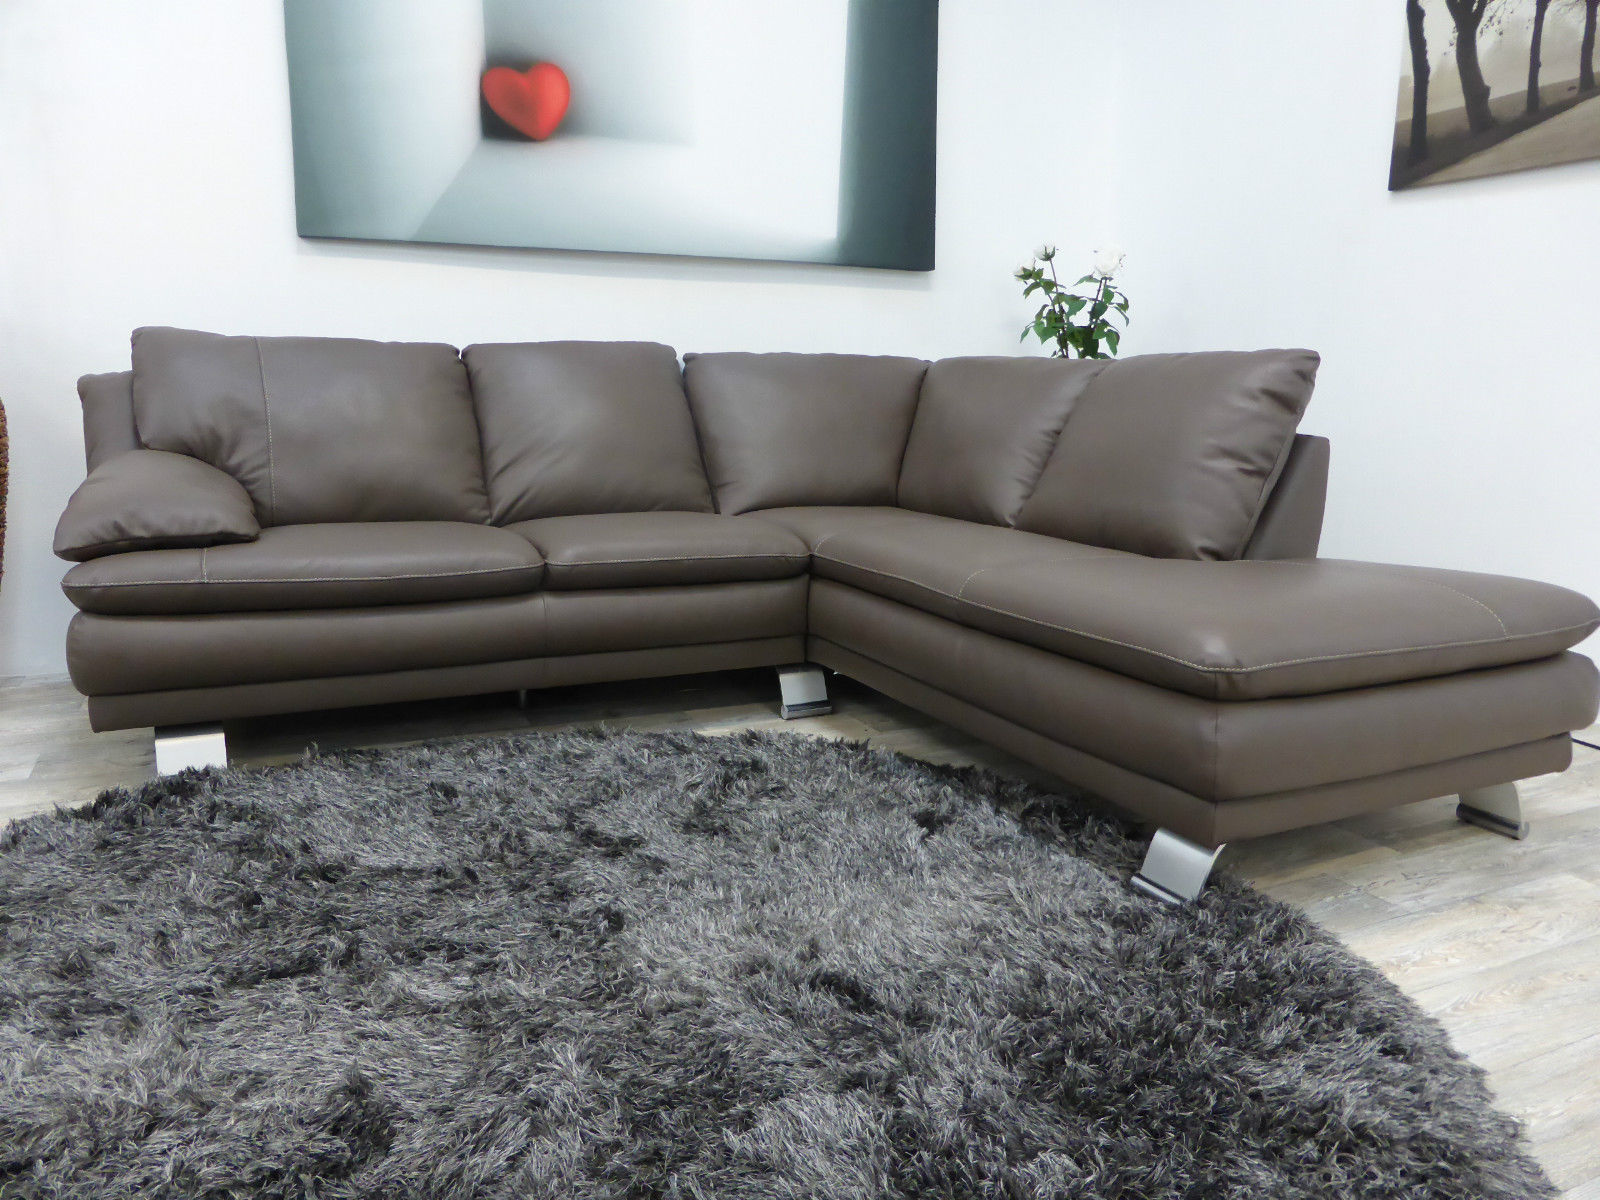 Natuzzi private label vicenza chaise corner sofa for Exclusive sofa